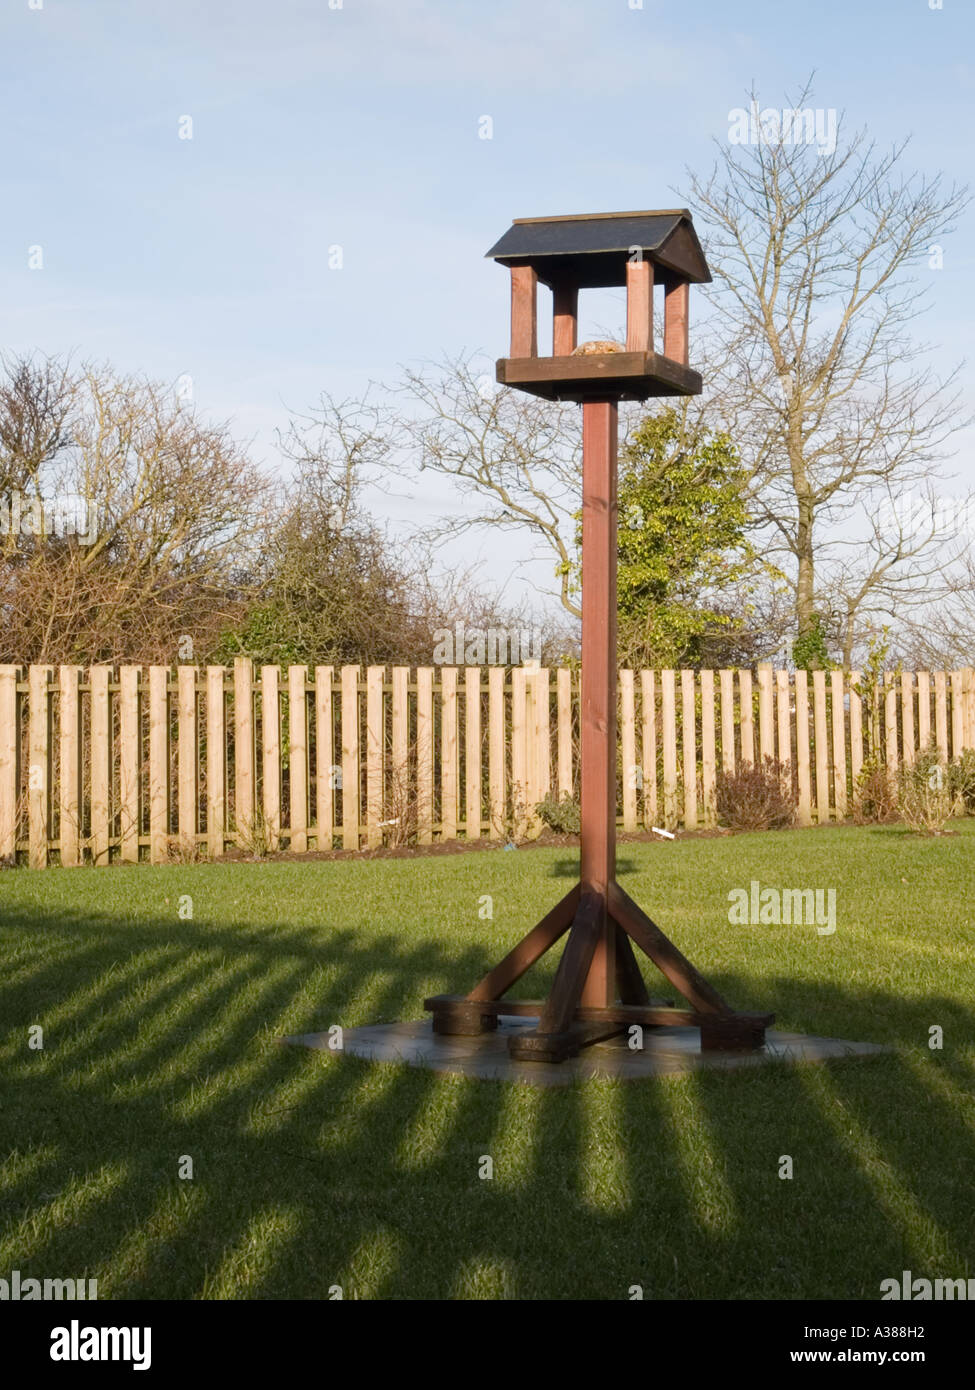 'BIRD TABLE' in a garden with fence shadow across lawn from low winter sunlight. Britain UK - Stock Image